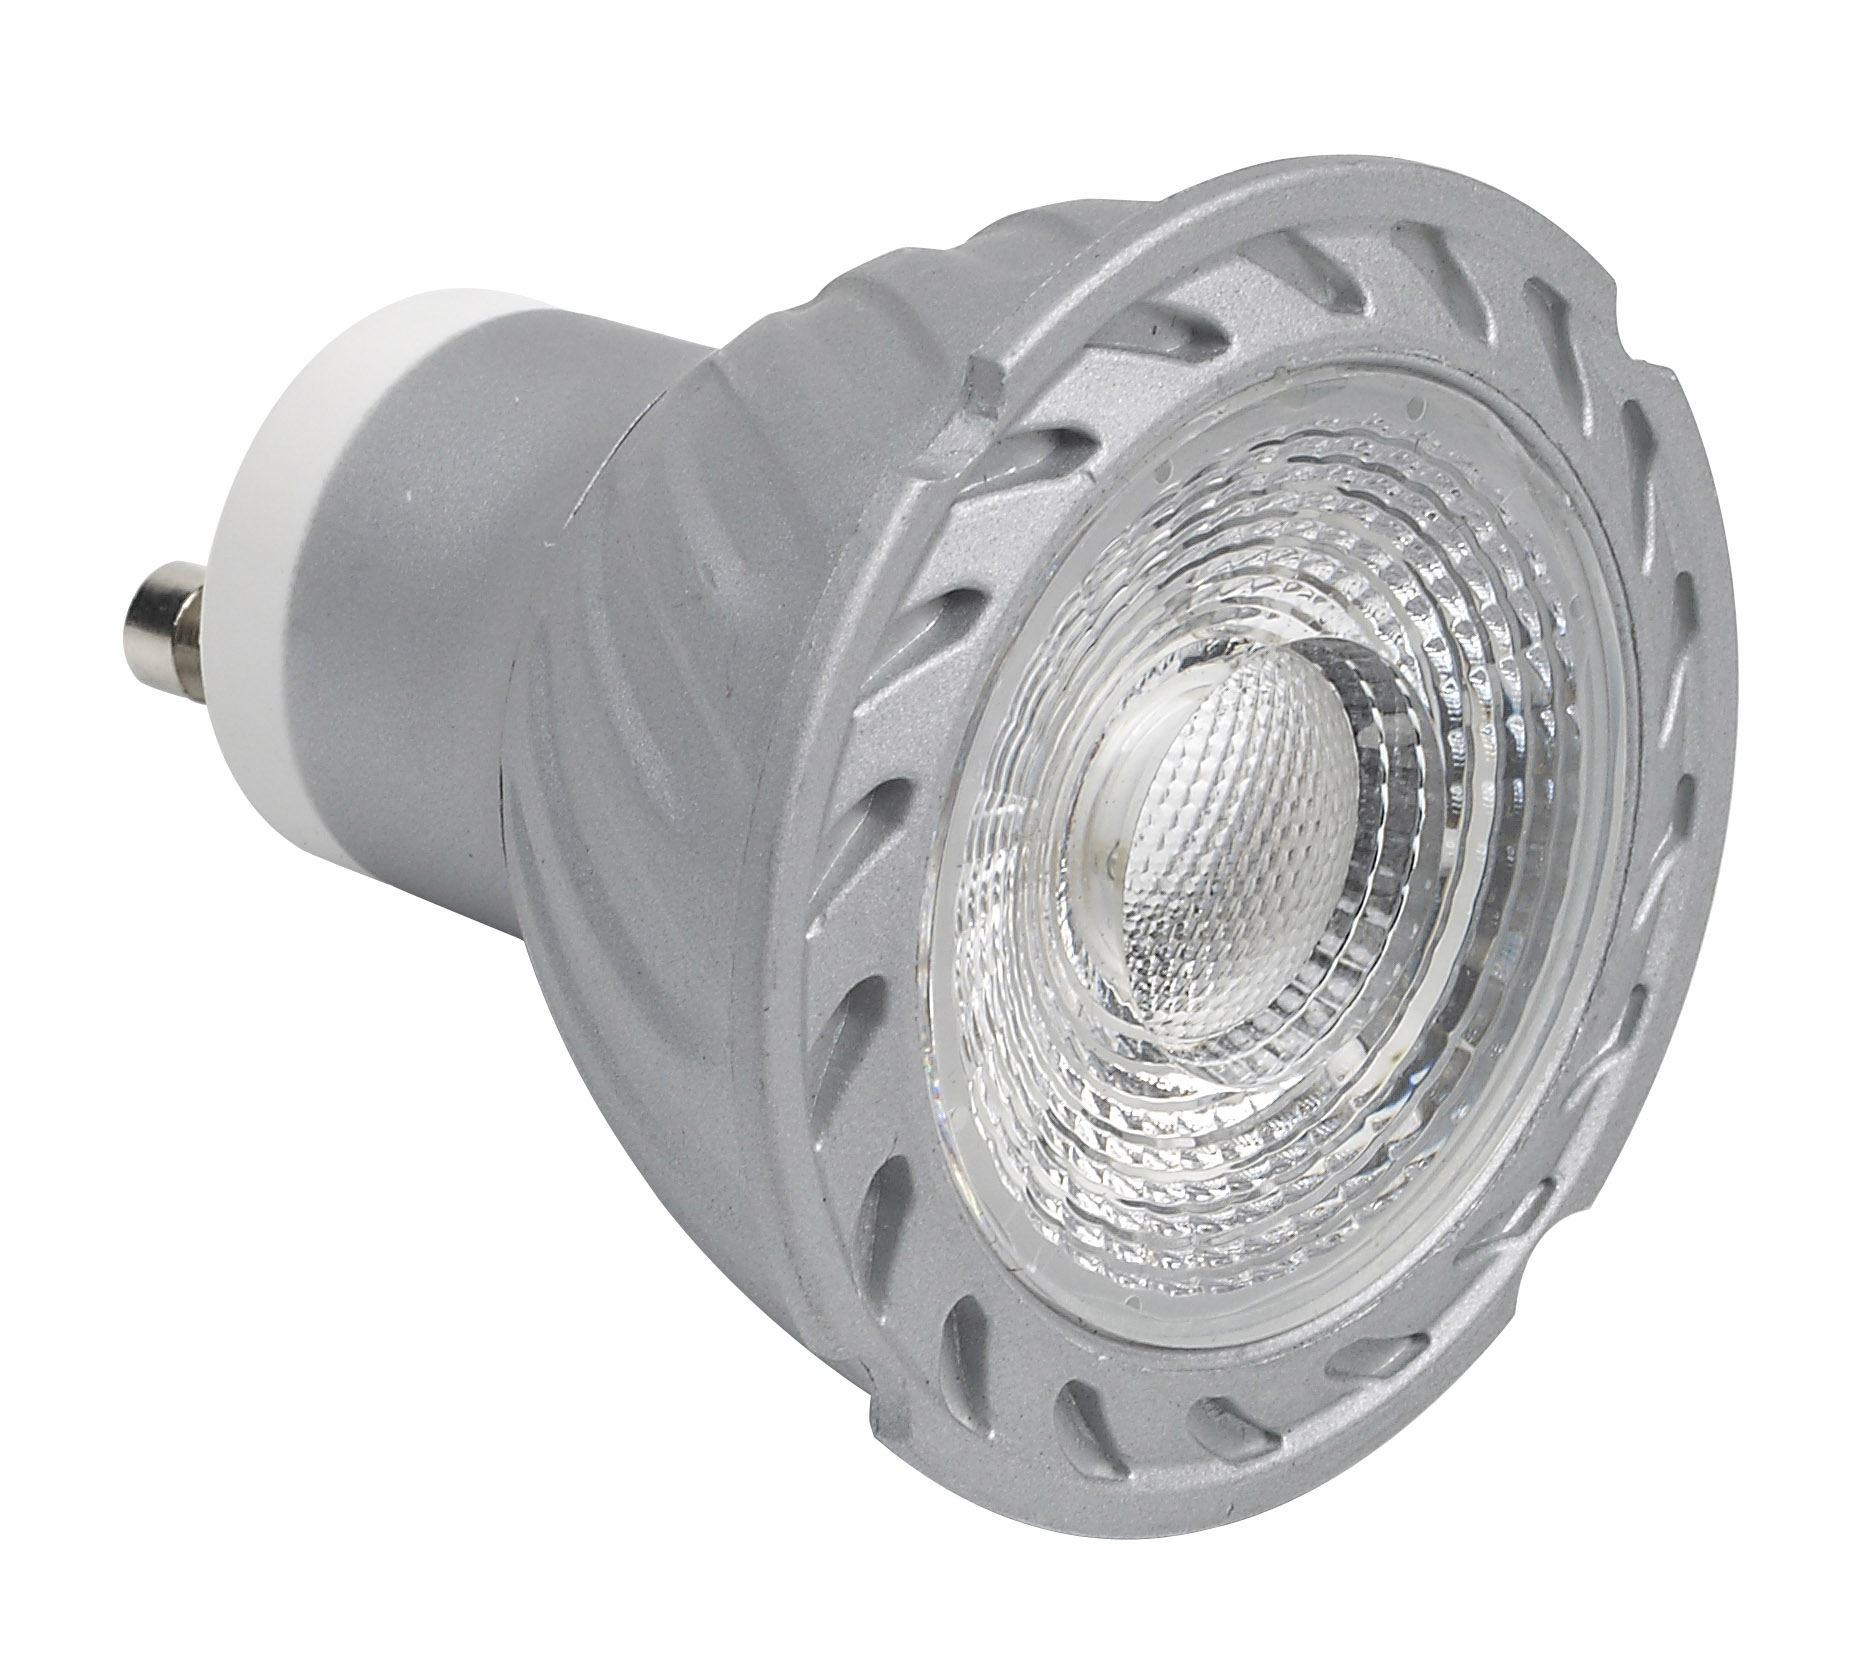 Led Gu10 5w Gu10 5w Led Cob Leyton Lighting